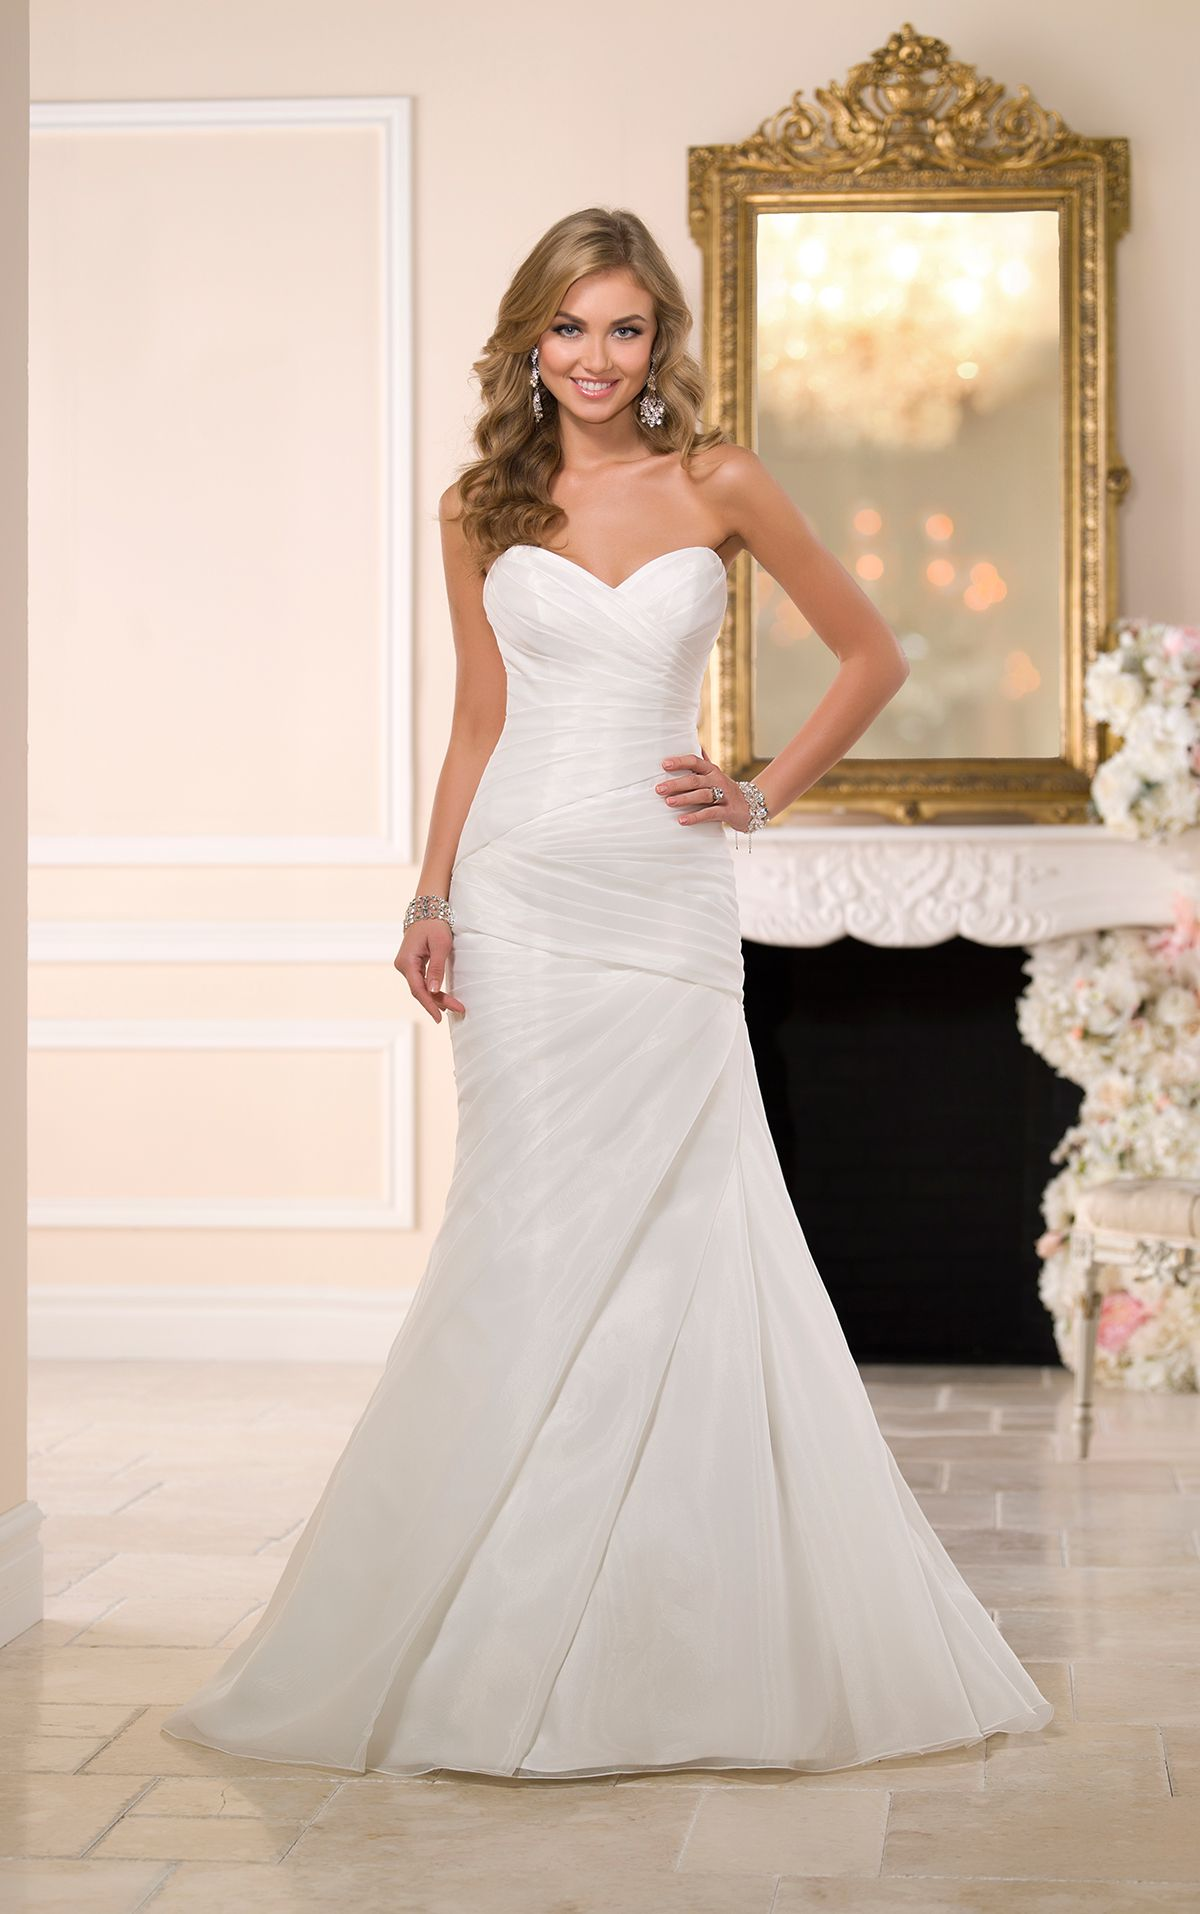 Look Through Sweetheart Neckline Strapless Fit And Flare Wedding Gowns Featuring An Asymmetrical Ruched Bodice Skirt With A Full Just Below The